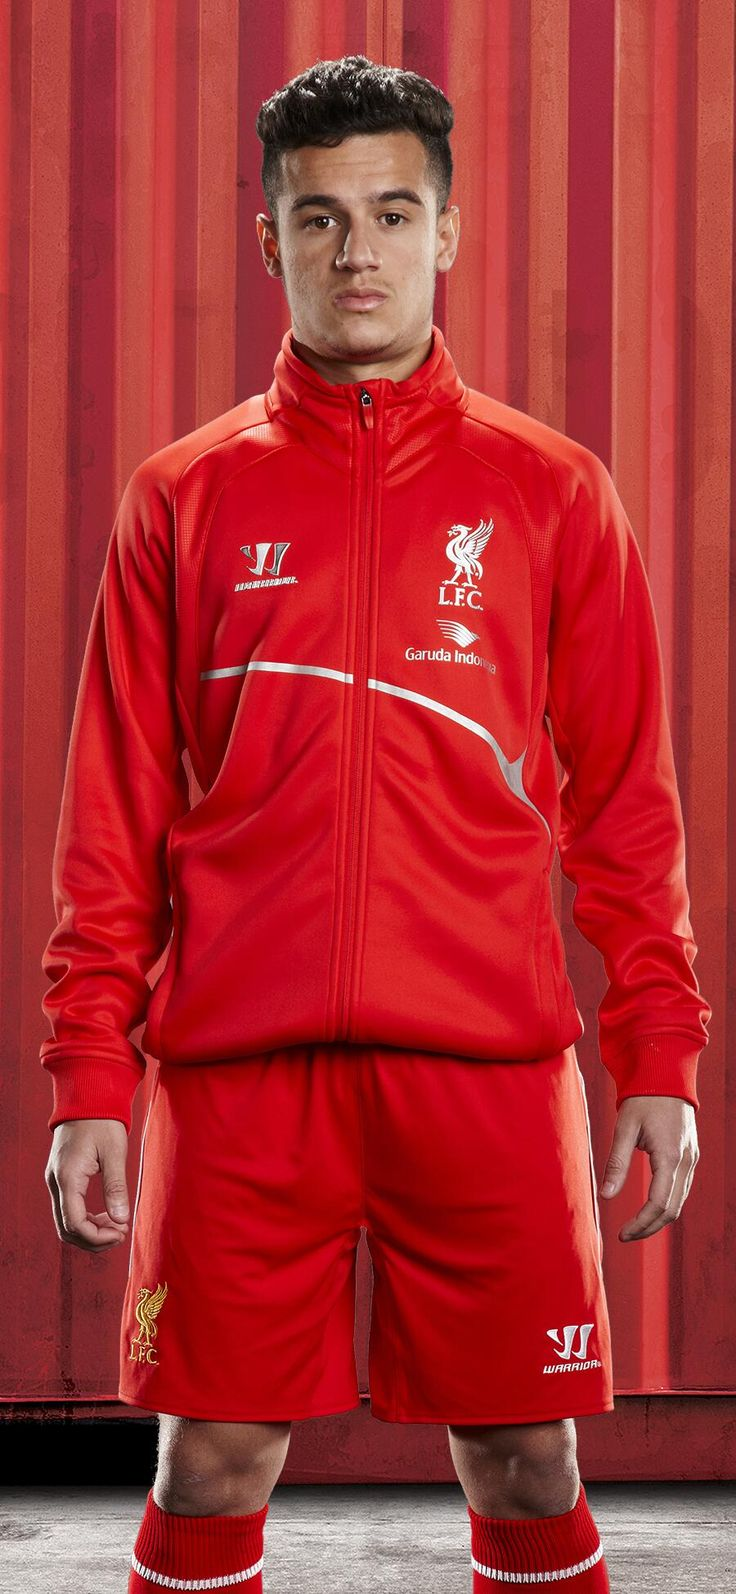 PHOTO: @Phil_Coutinho sports an item from #LFC's new training kit collection… http://store.liverpoolfc.com/kit/training-kit/ … #DEMAND pic.twitter.com/tZqcT7Gg86